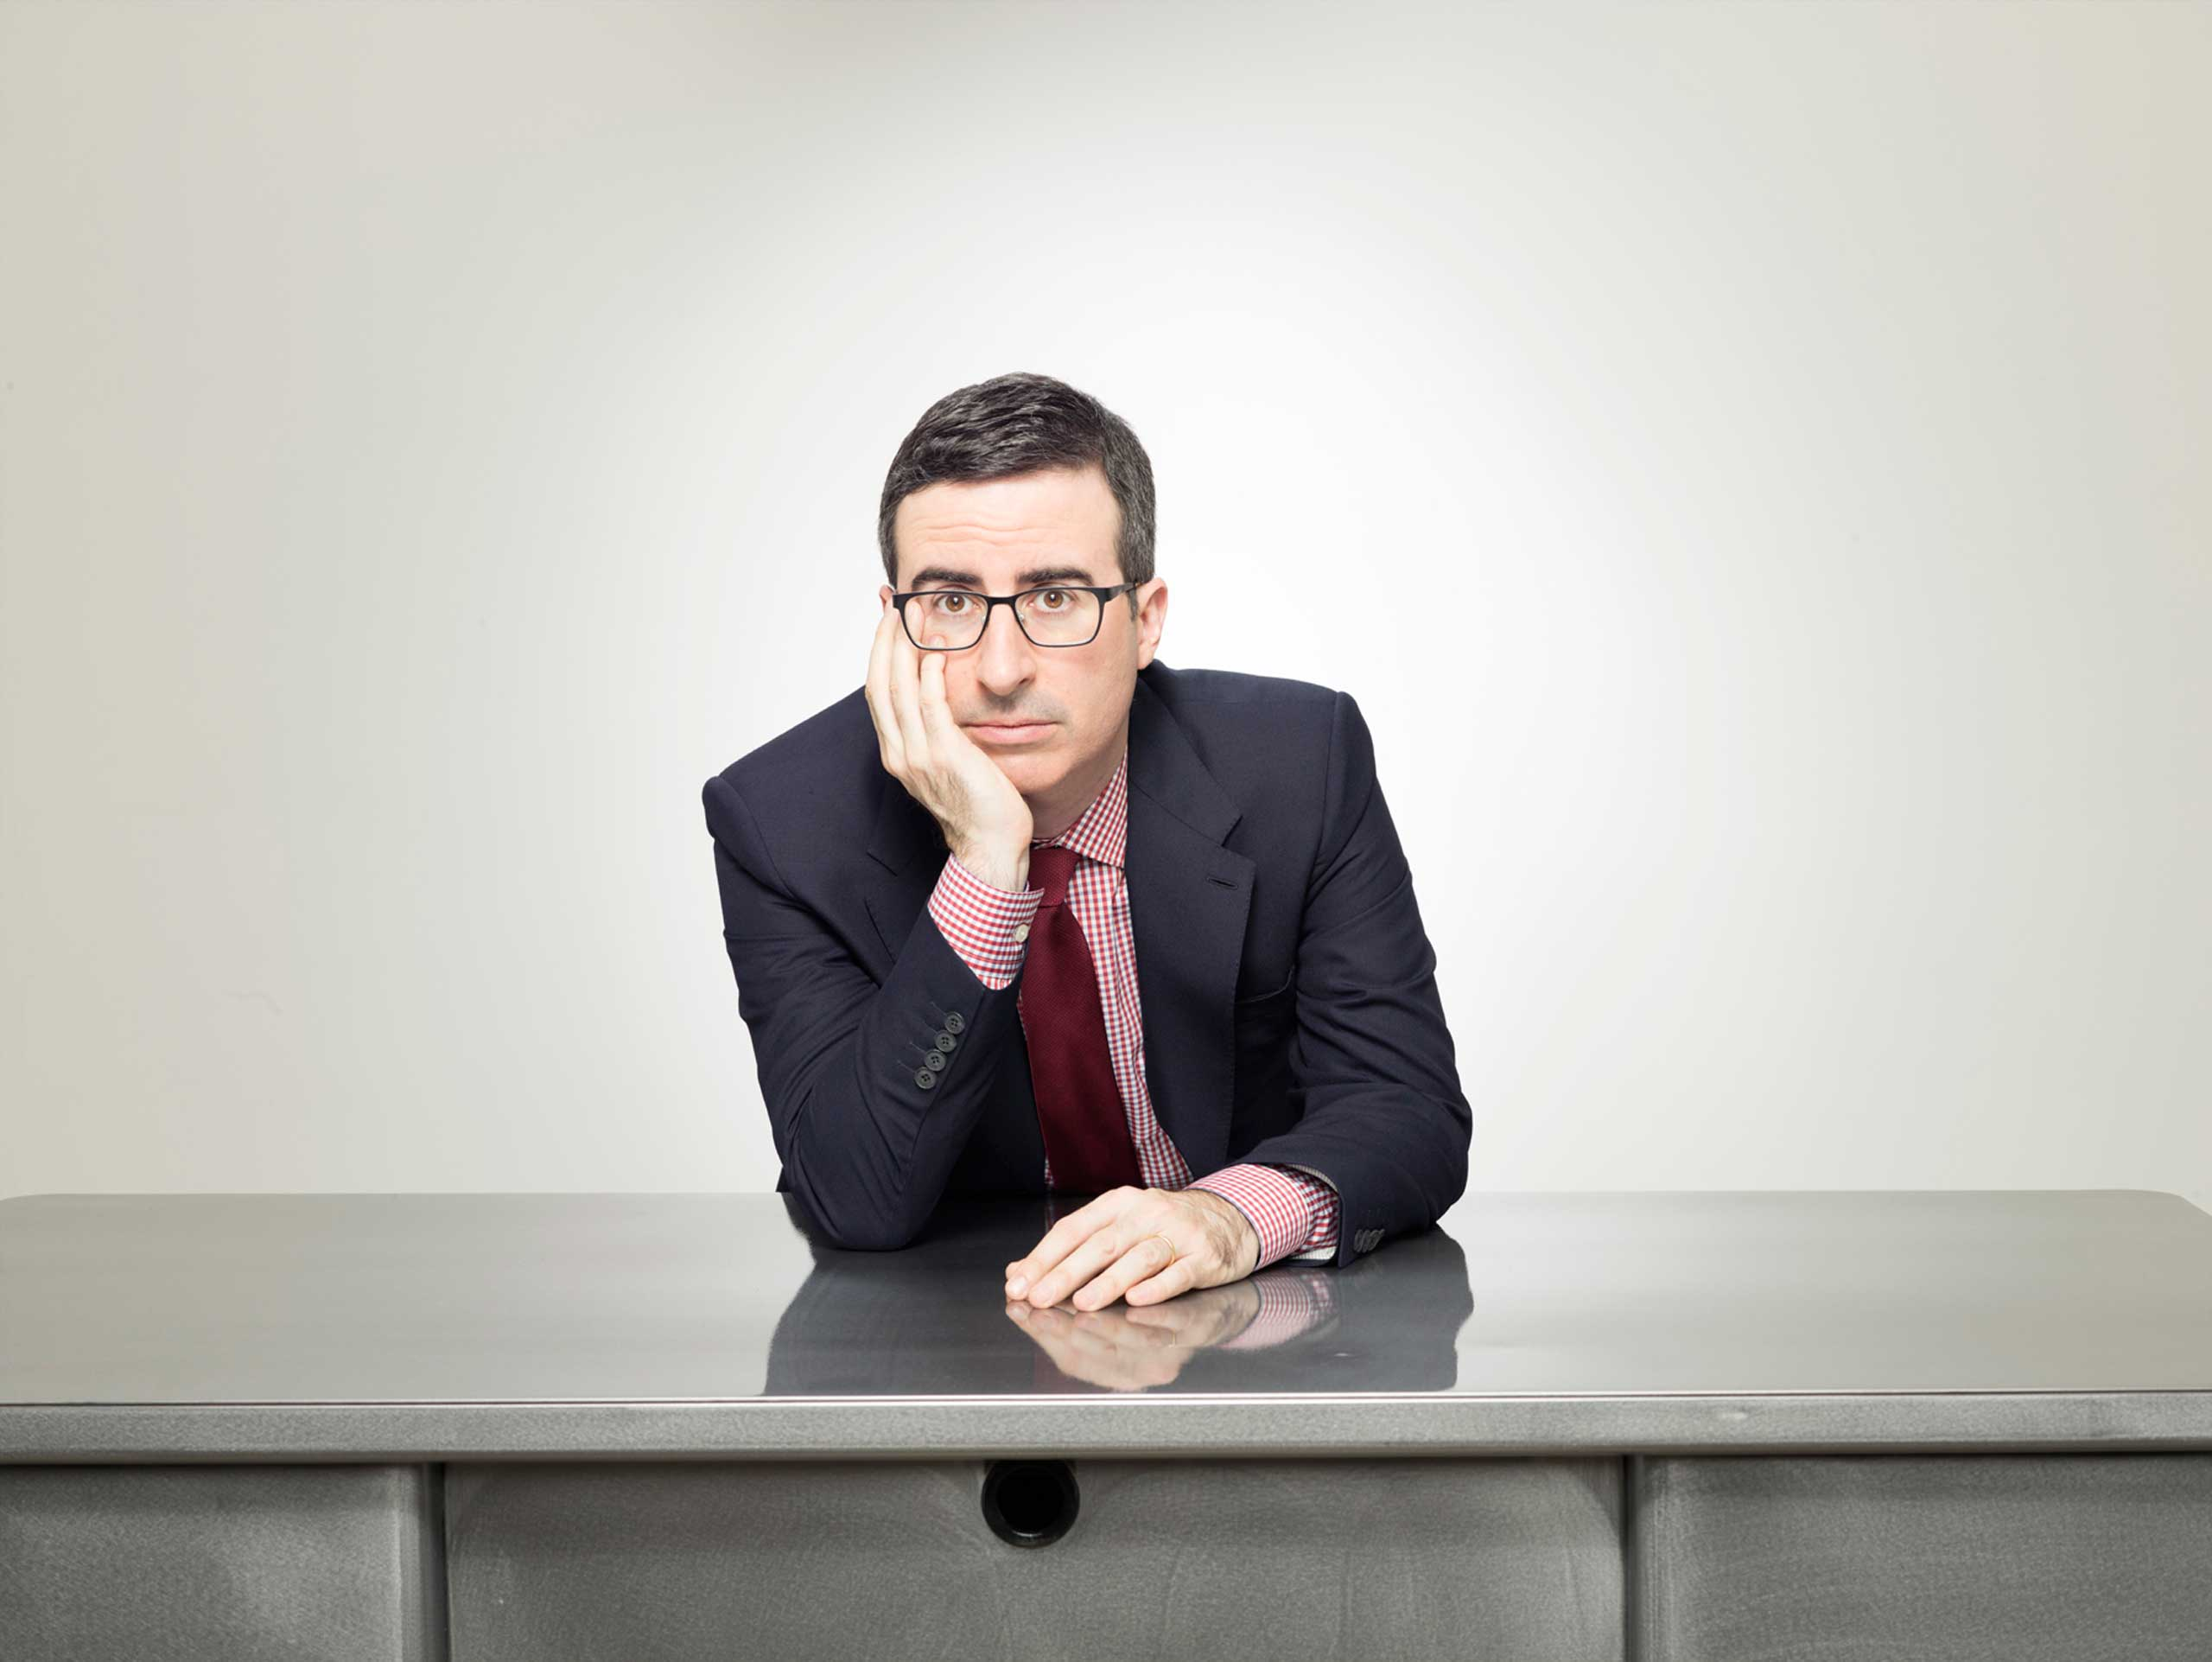 Ring in the New Year With John Oliver's Wit and Wisdom